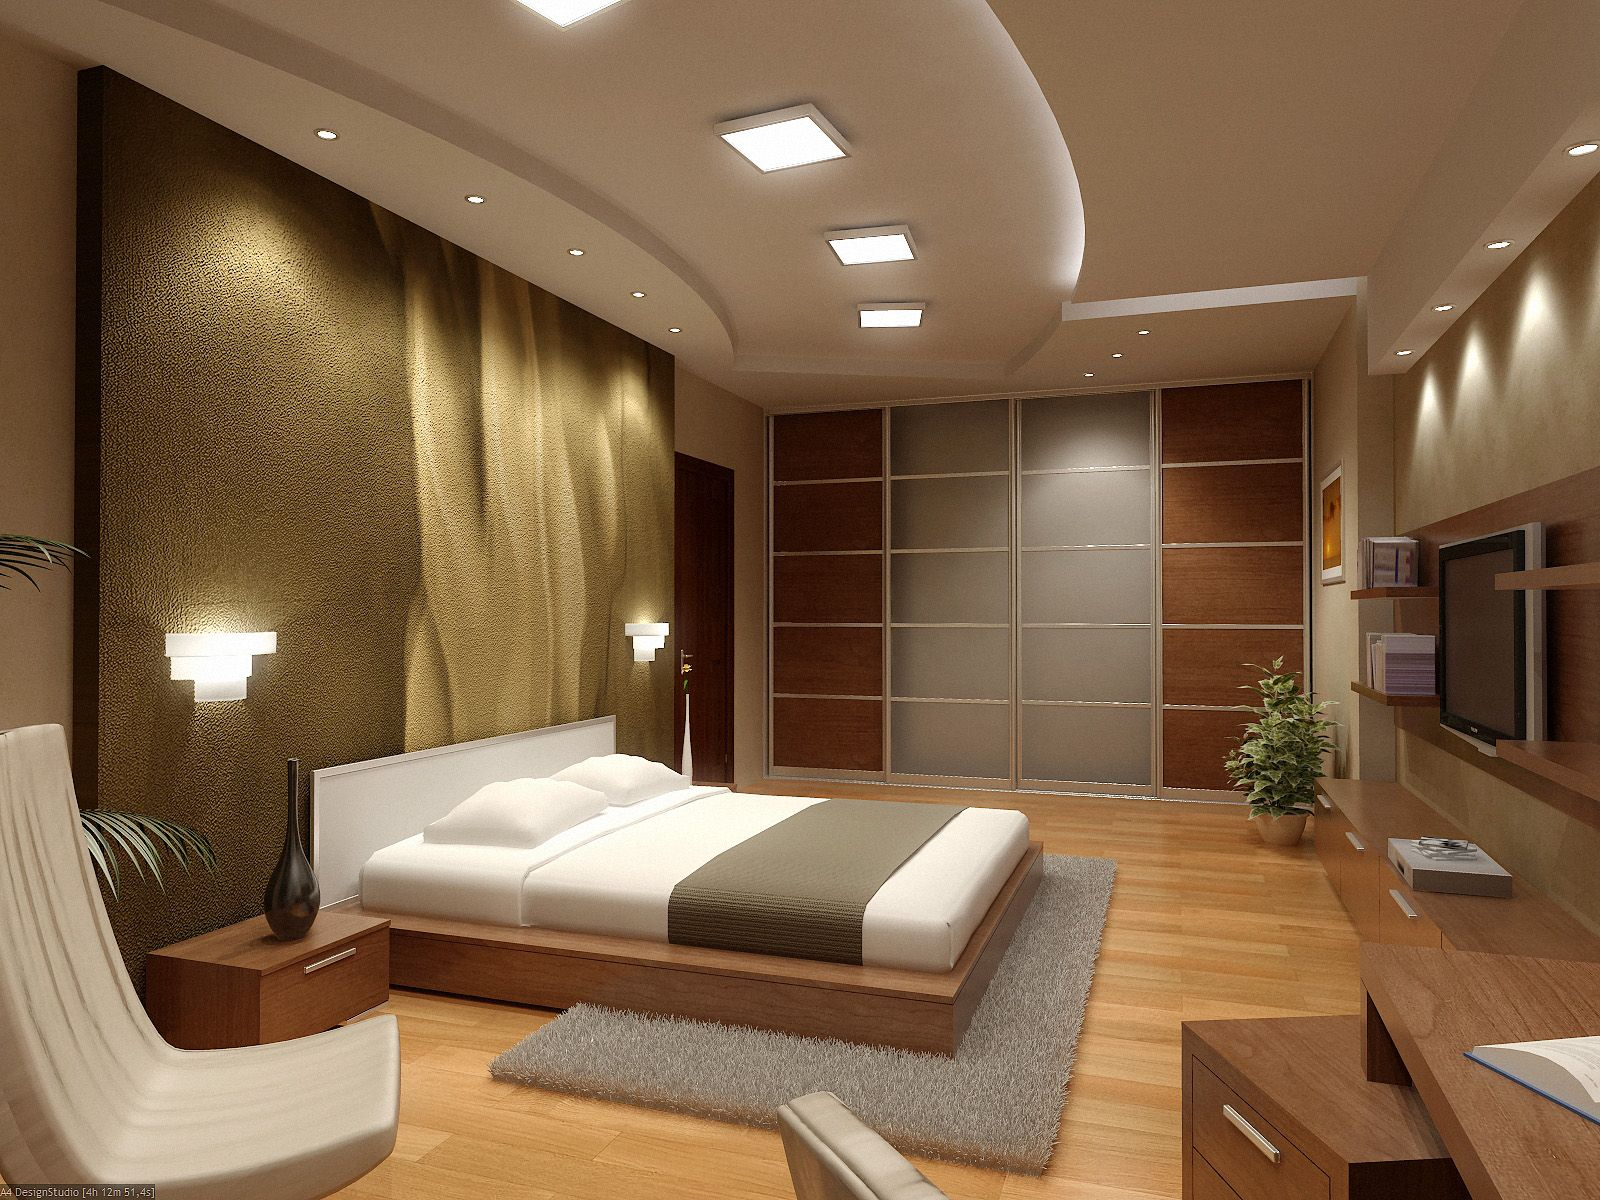 New home designs latest modern homes luxury interior for Modern interior designs for small houses